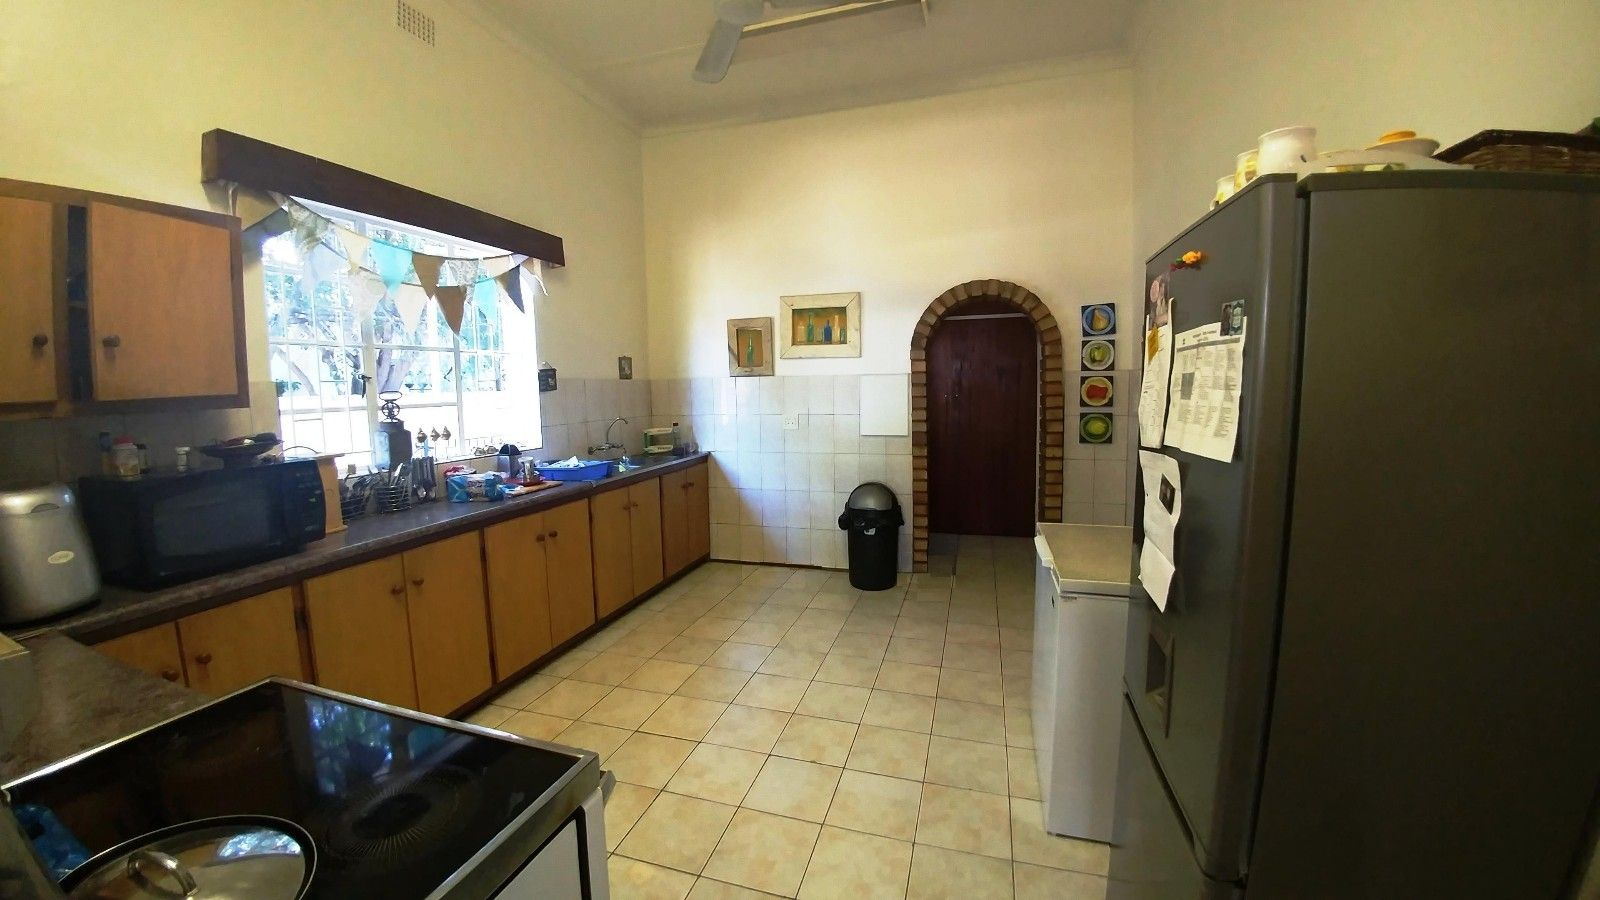 Potchefstroom Central property for sale. Ref No: 13460775. Picture no 8